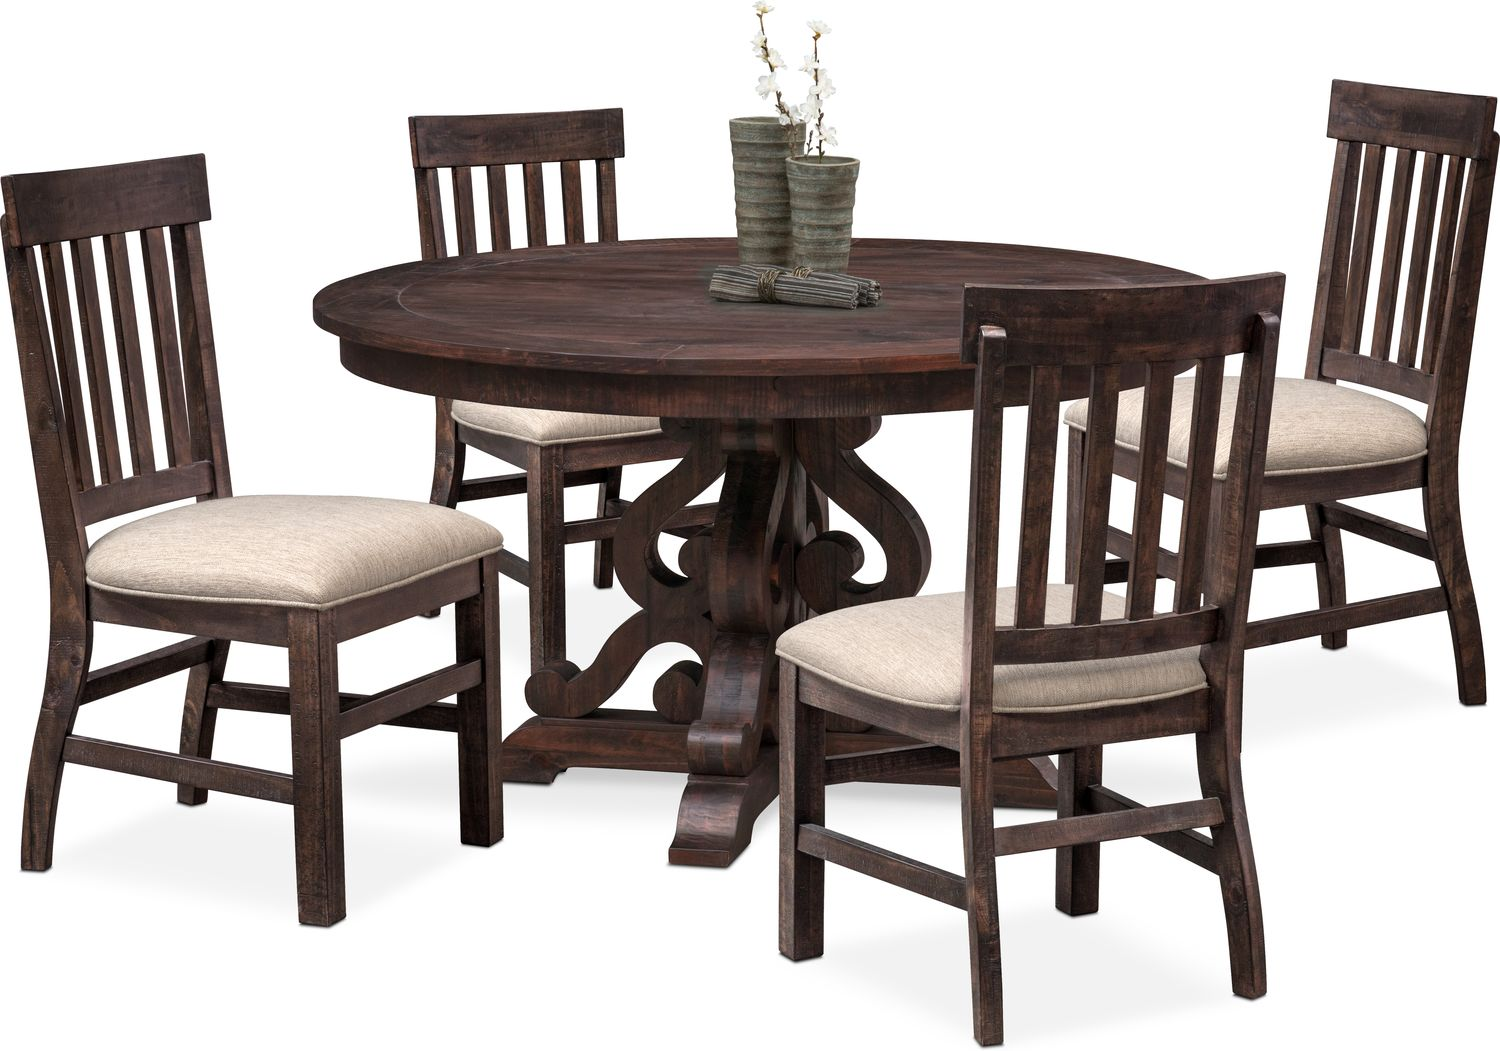 Delicieux Dining Room Furniture   Charthouse Round Dining Table And 4 Side Chairs    Charcoal